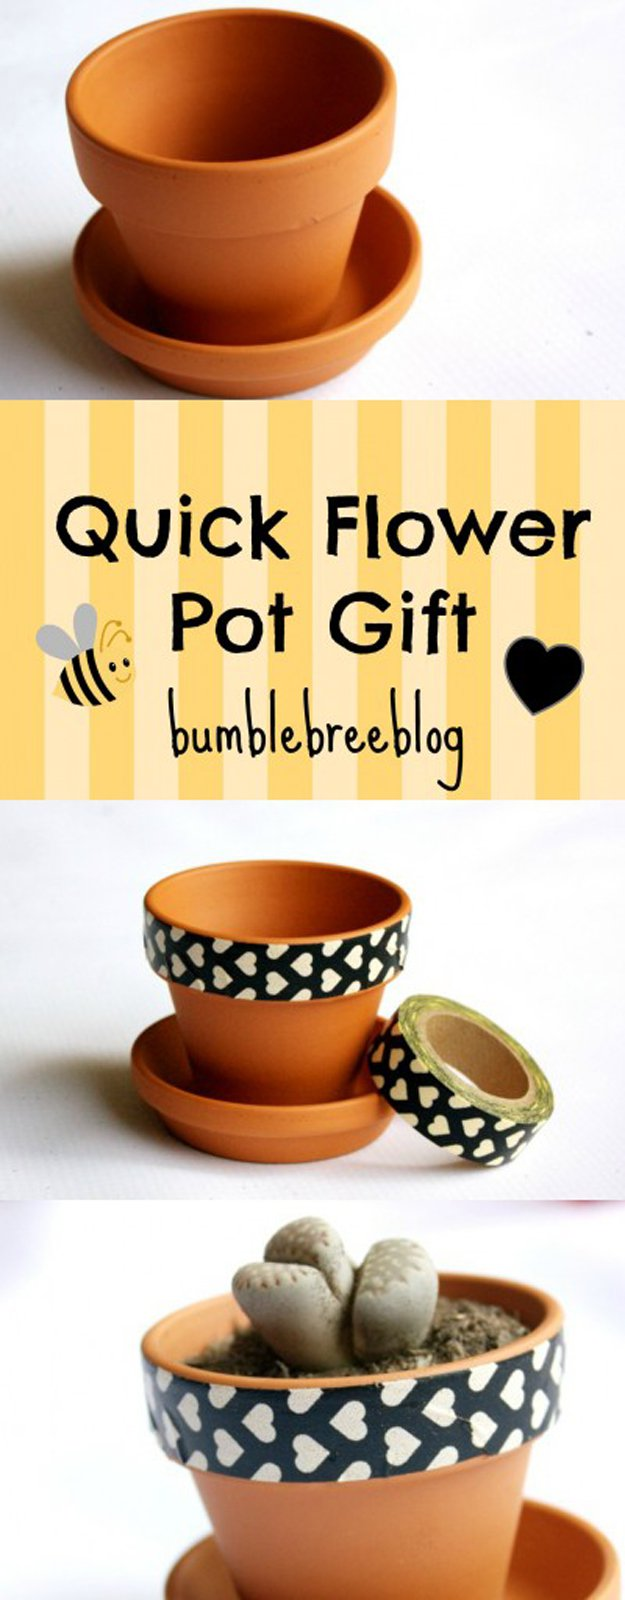 Washi Tape Crafts - DIY Quick Flower Pot Gift - Wall Art, Frames, Cards, Pencils, Room Decor and DIY Gifts, Back To School Supplies - Creative, Fun Craft Ideas for Teens, Tweens and Teenagers - Step by Step Tutorials and Instructions #washitape #crafts #cheapcrafts #teencrafts